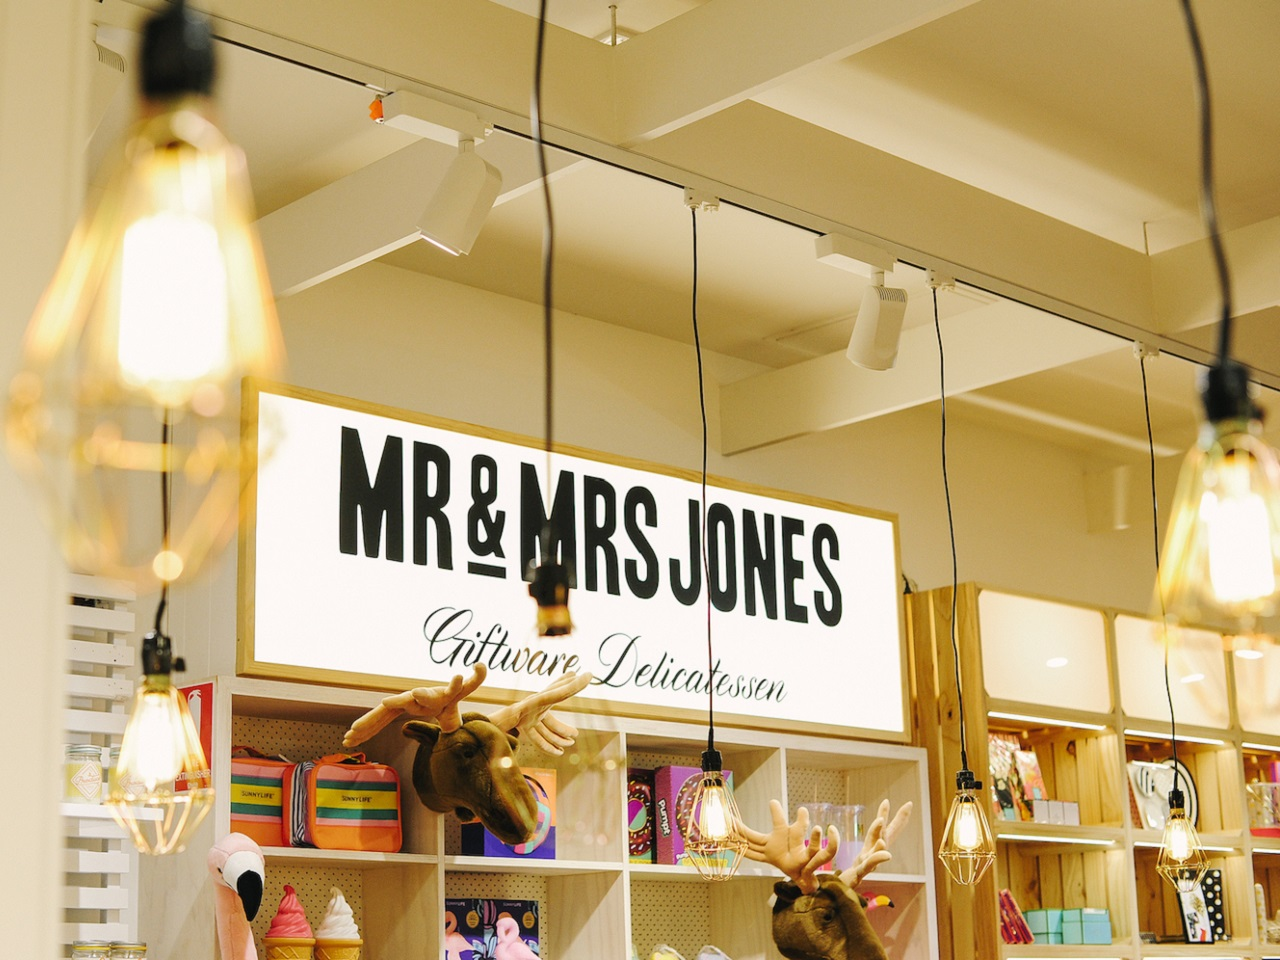 Mr & Mrs Jones, The Giftware Delicatessens